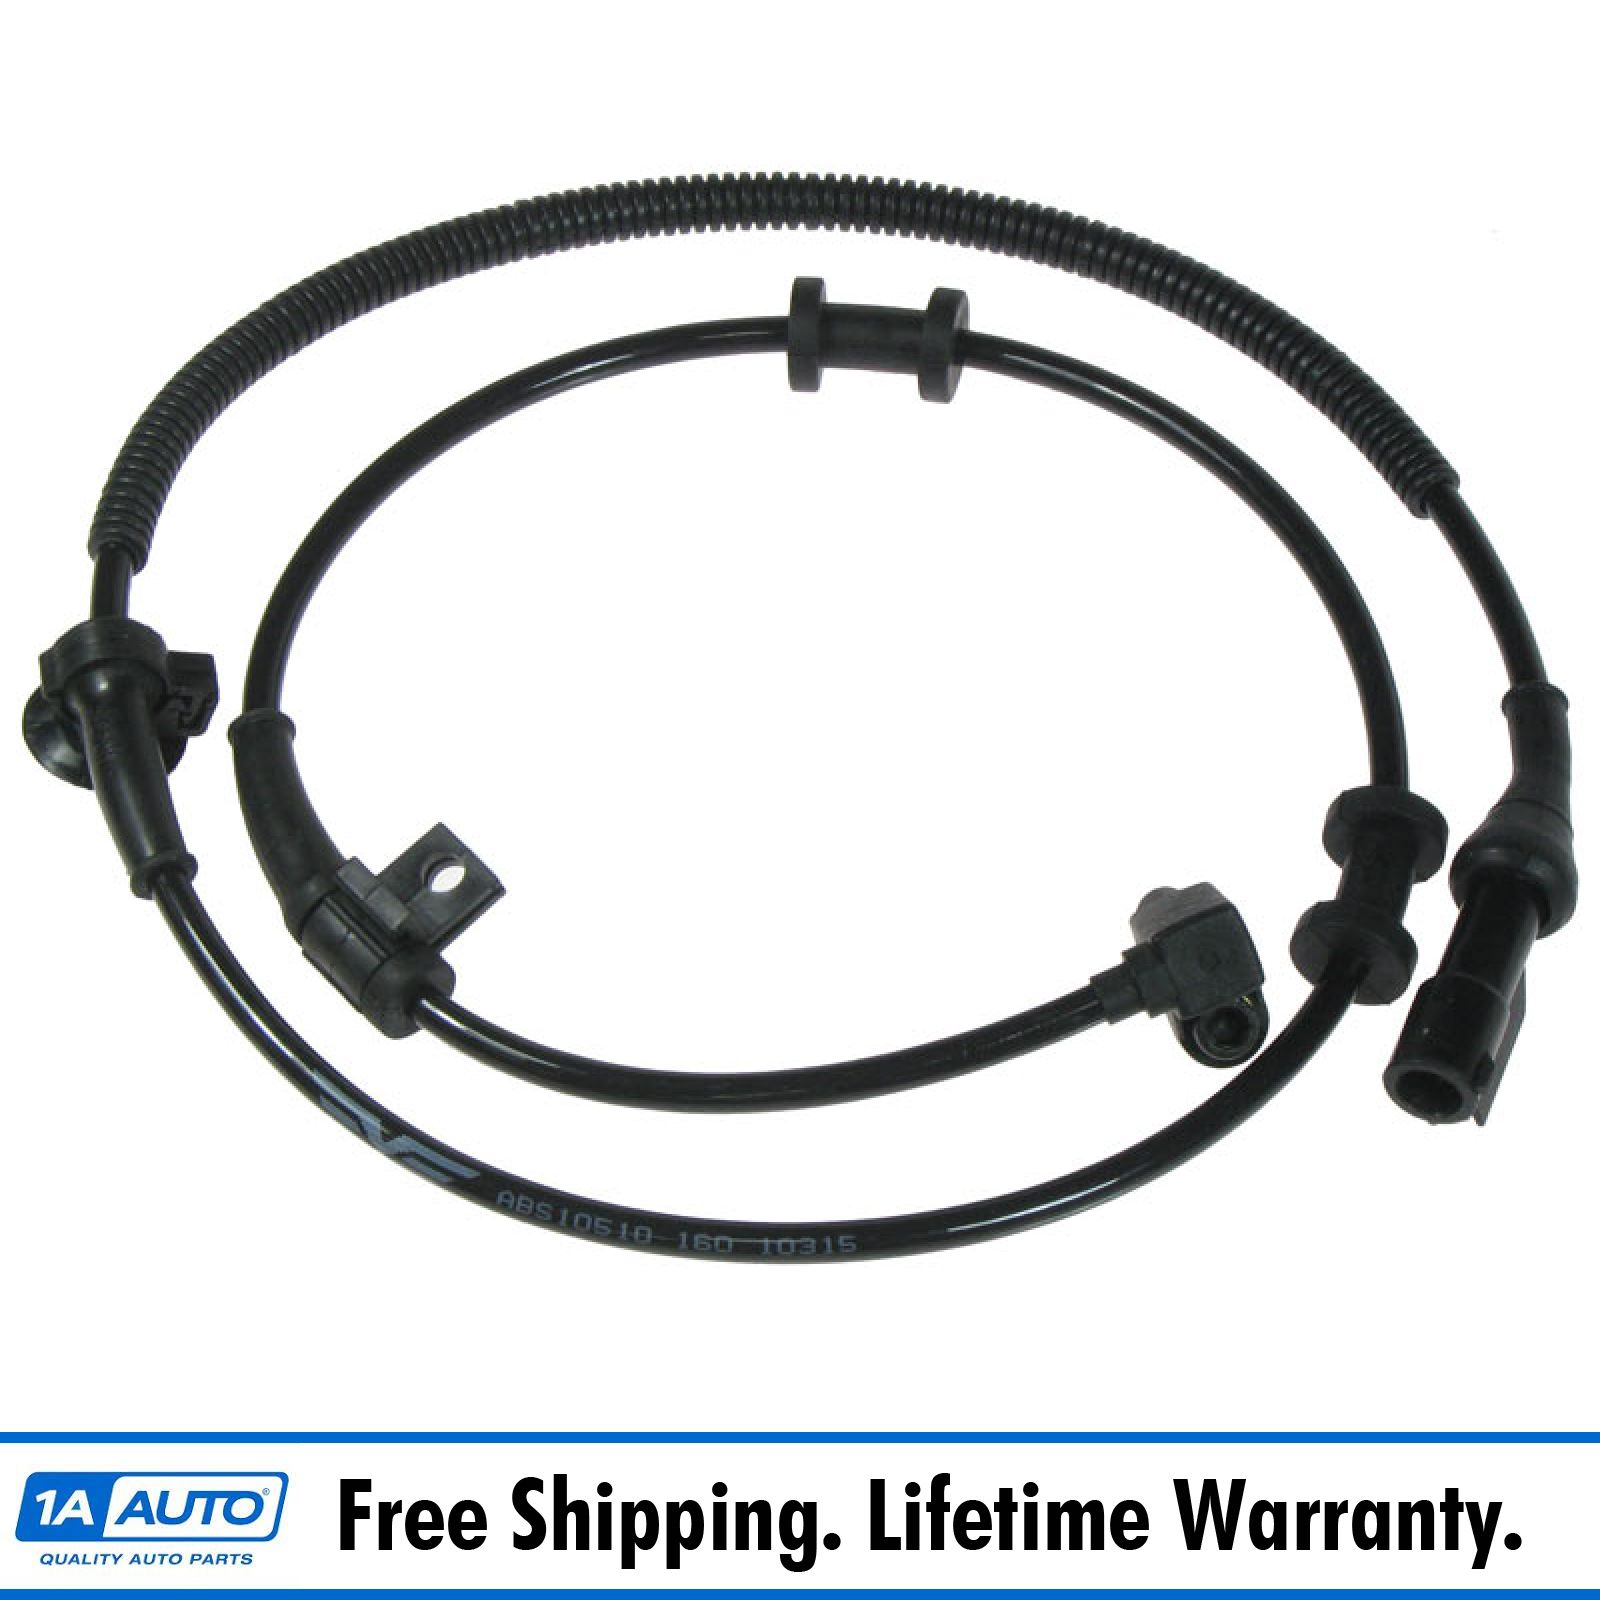 details about dorman front abs speed sensor wire wiring harness for ford pickup truck sd 4wd 2000 Ford Expedition Wiring Harness